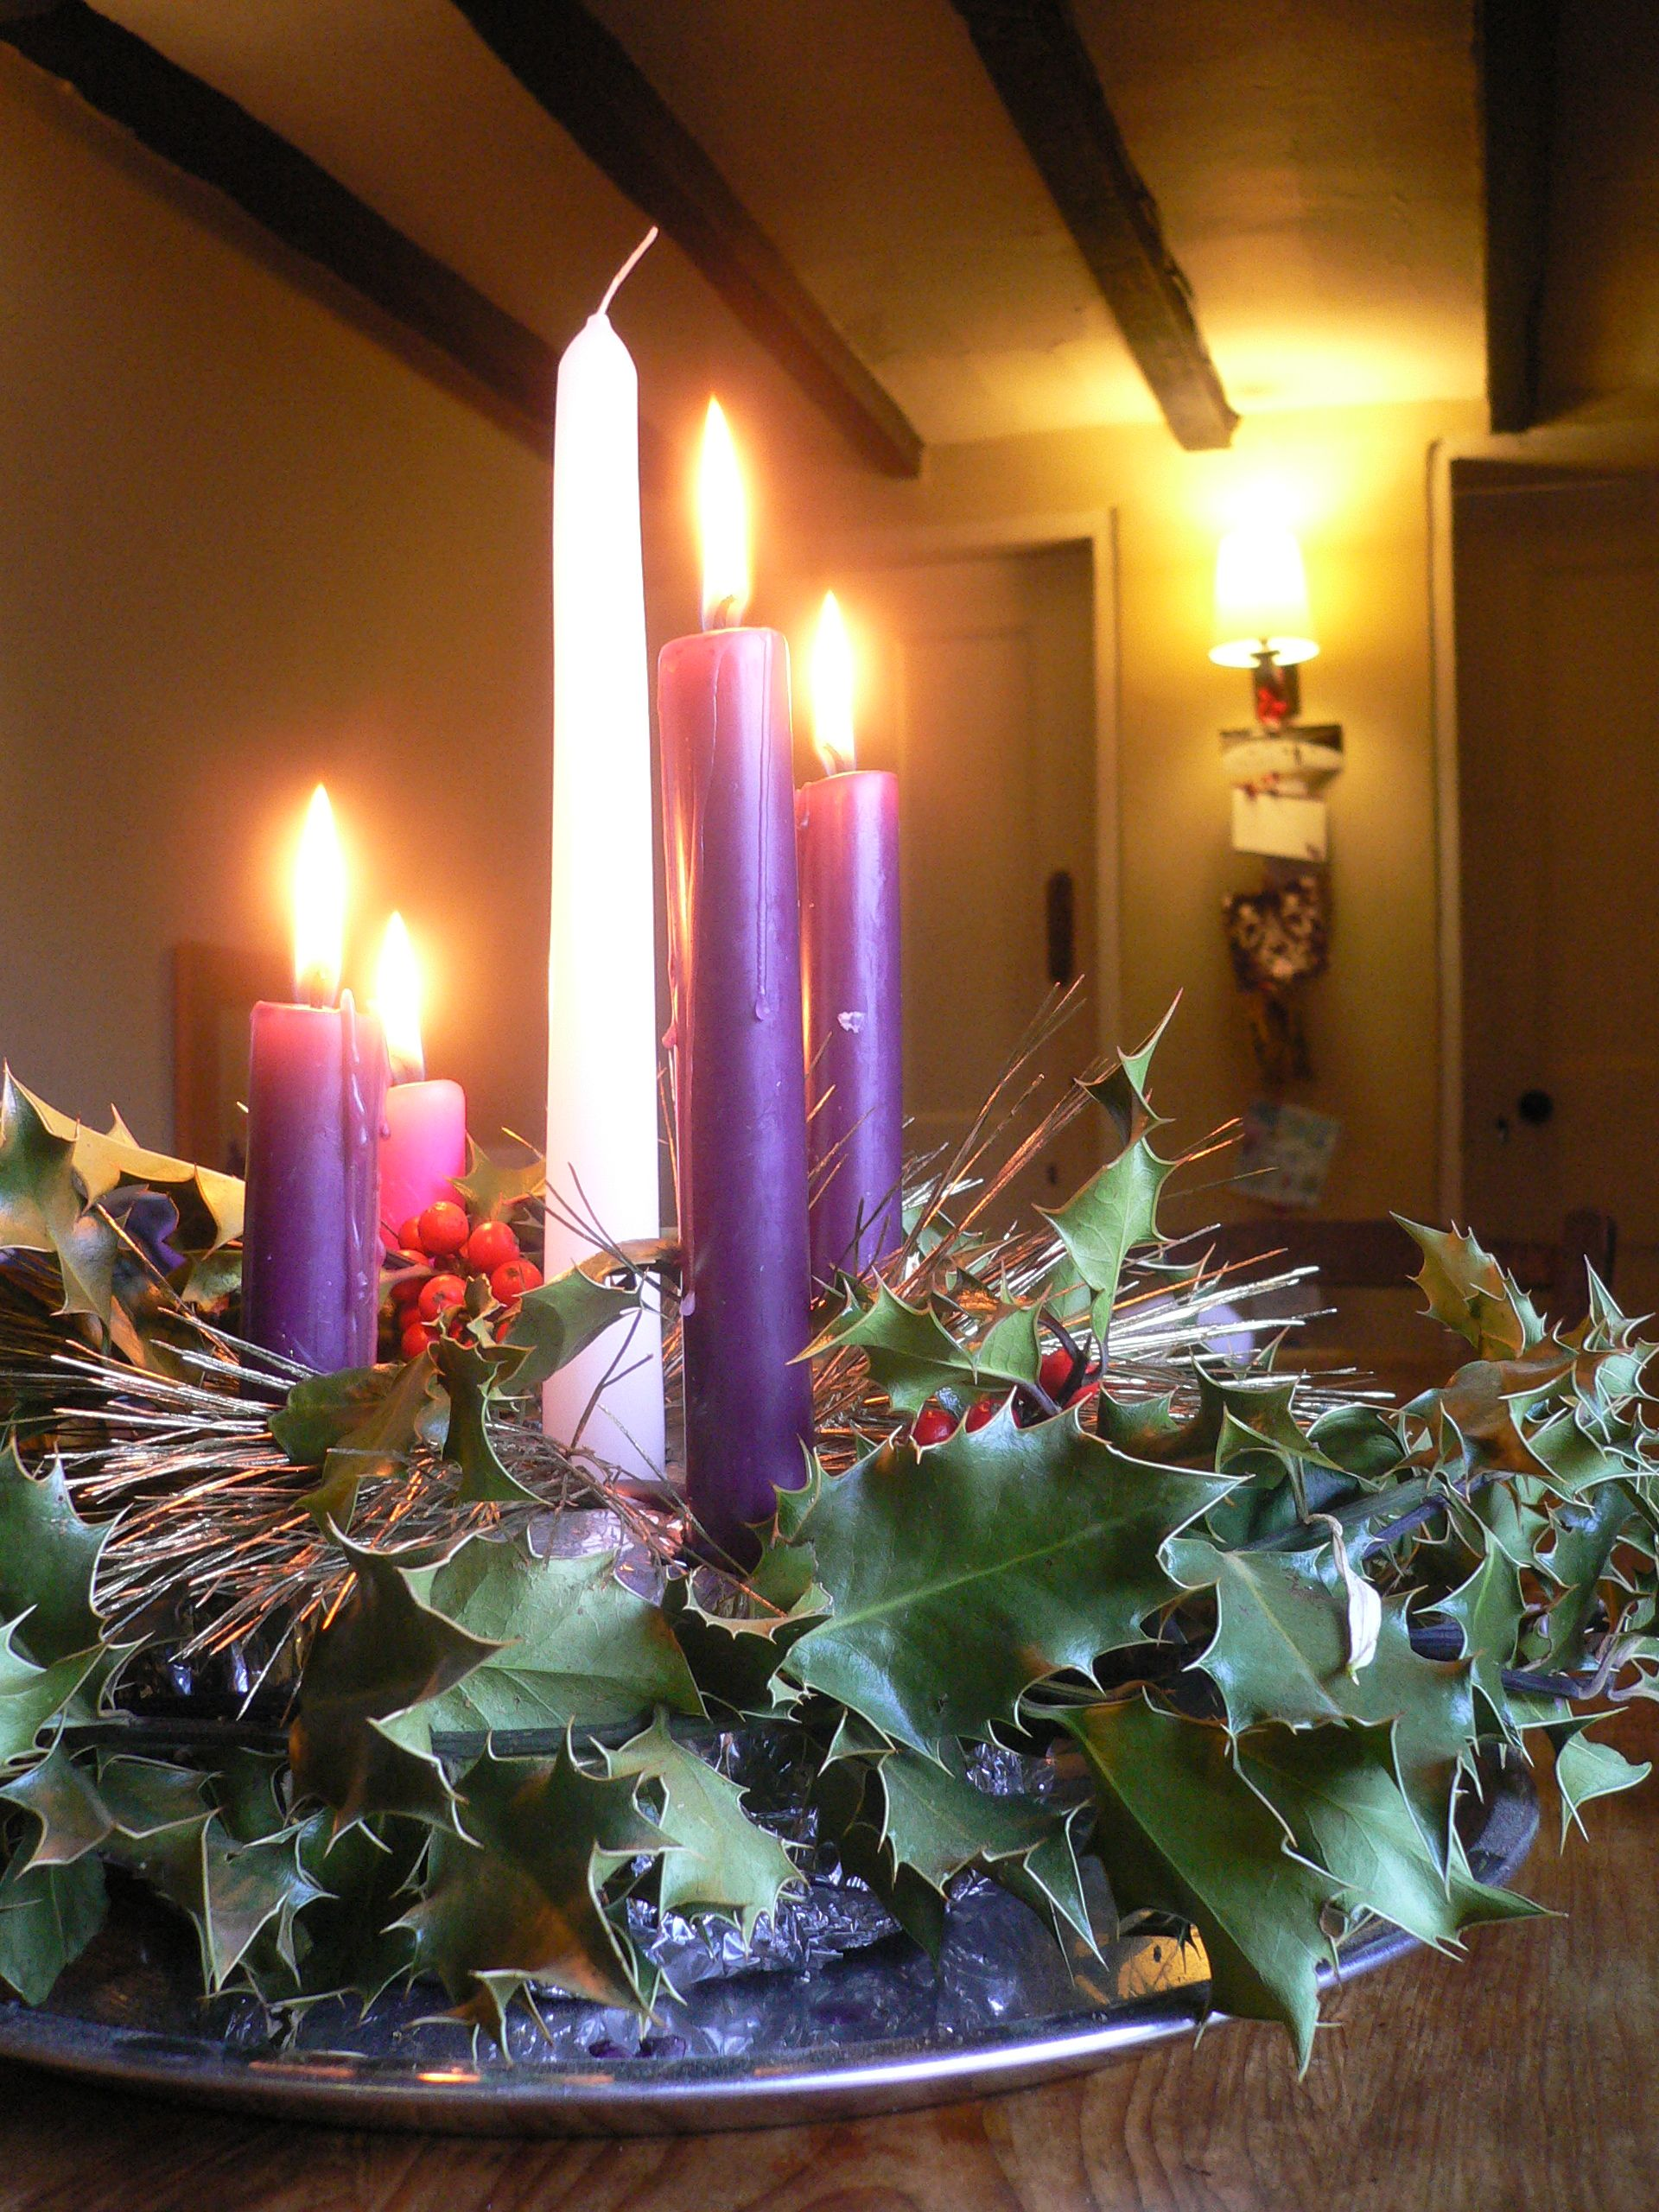 The Ring Or Wheel Of The Advent Wreath Of Evergreens